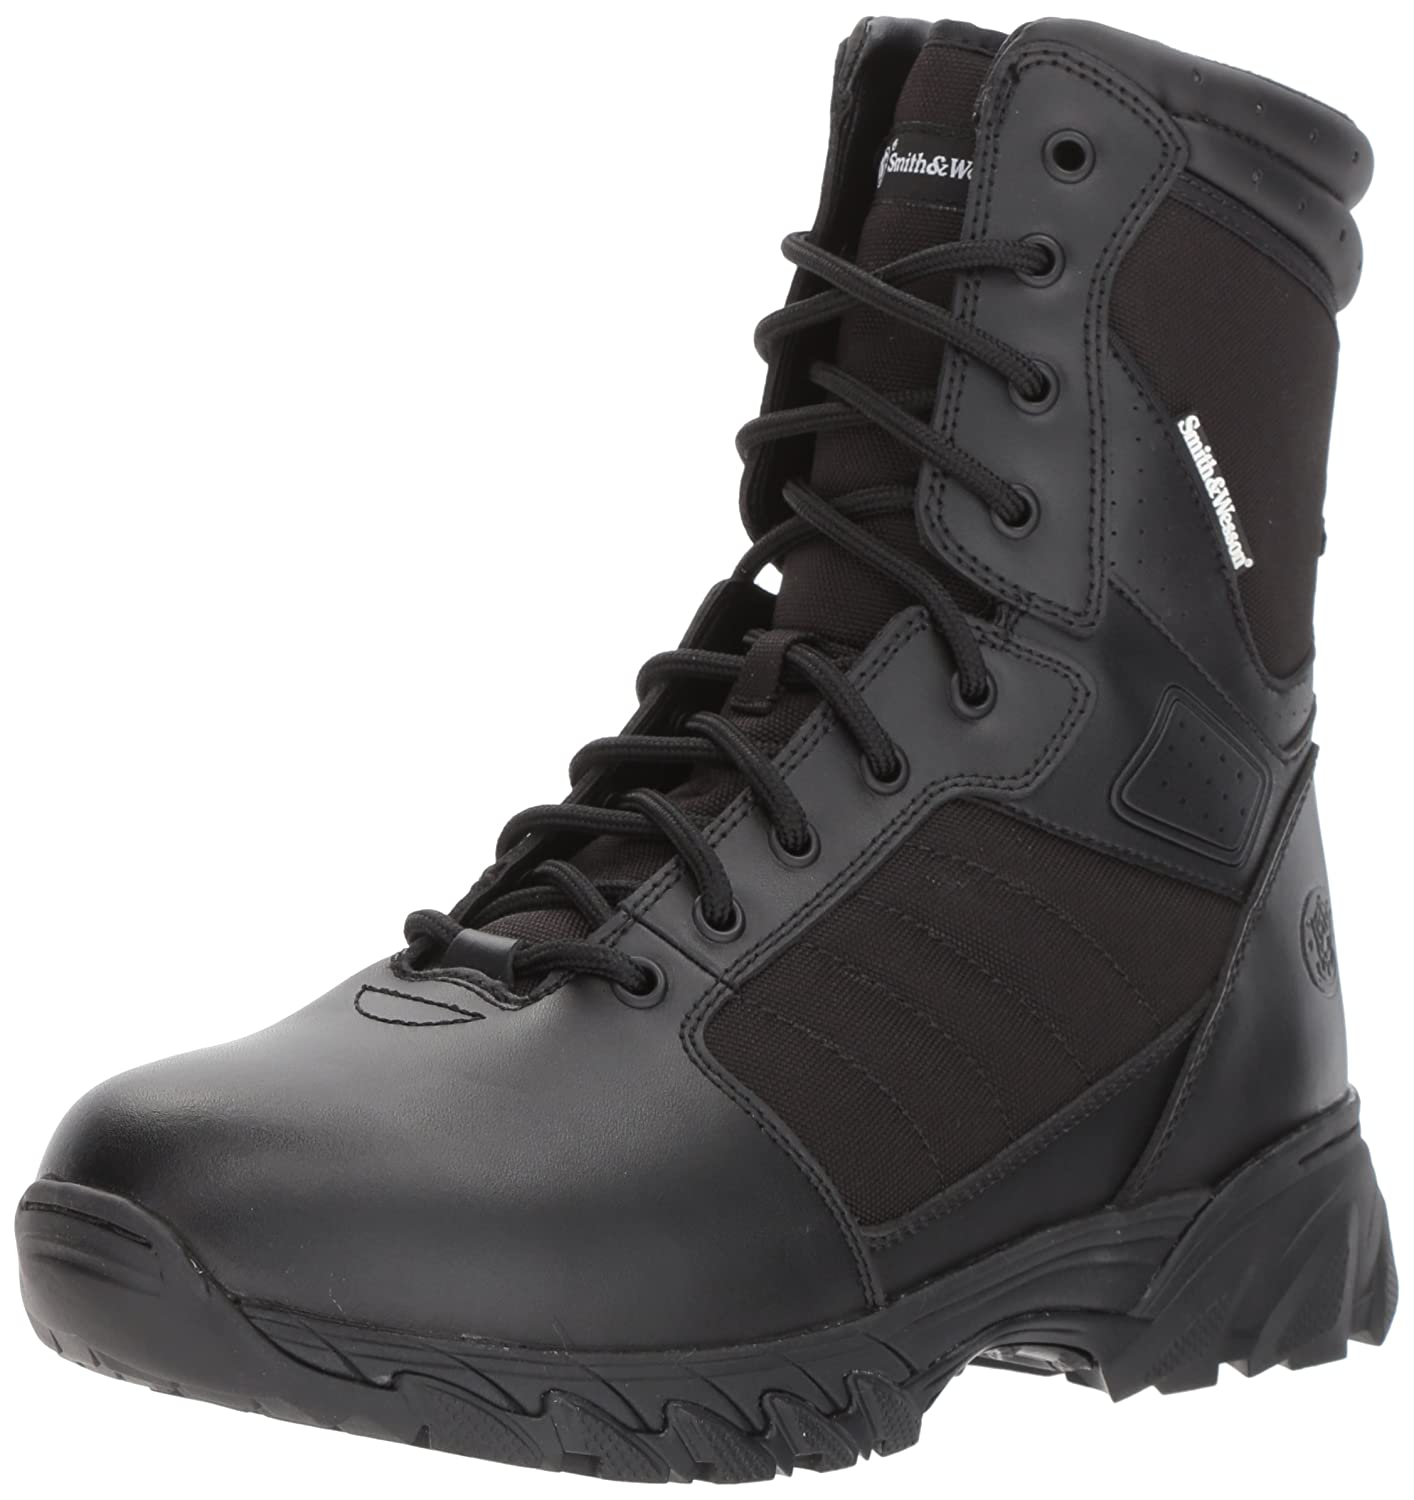 Smith & Wesson Men's Breach 2.0 Tactical Boots SWB11001-100-5